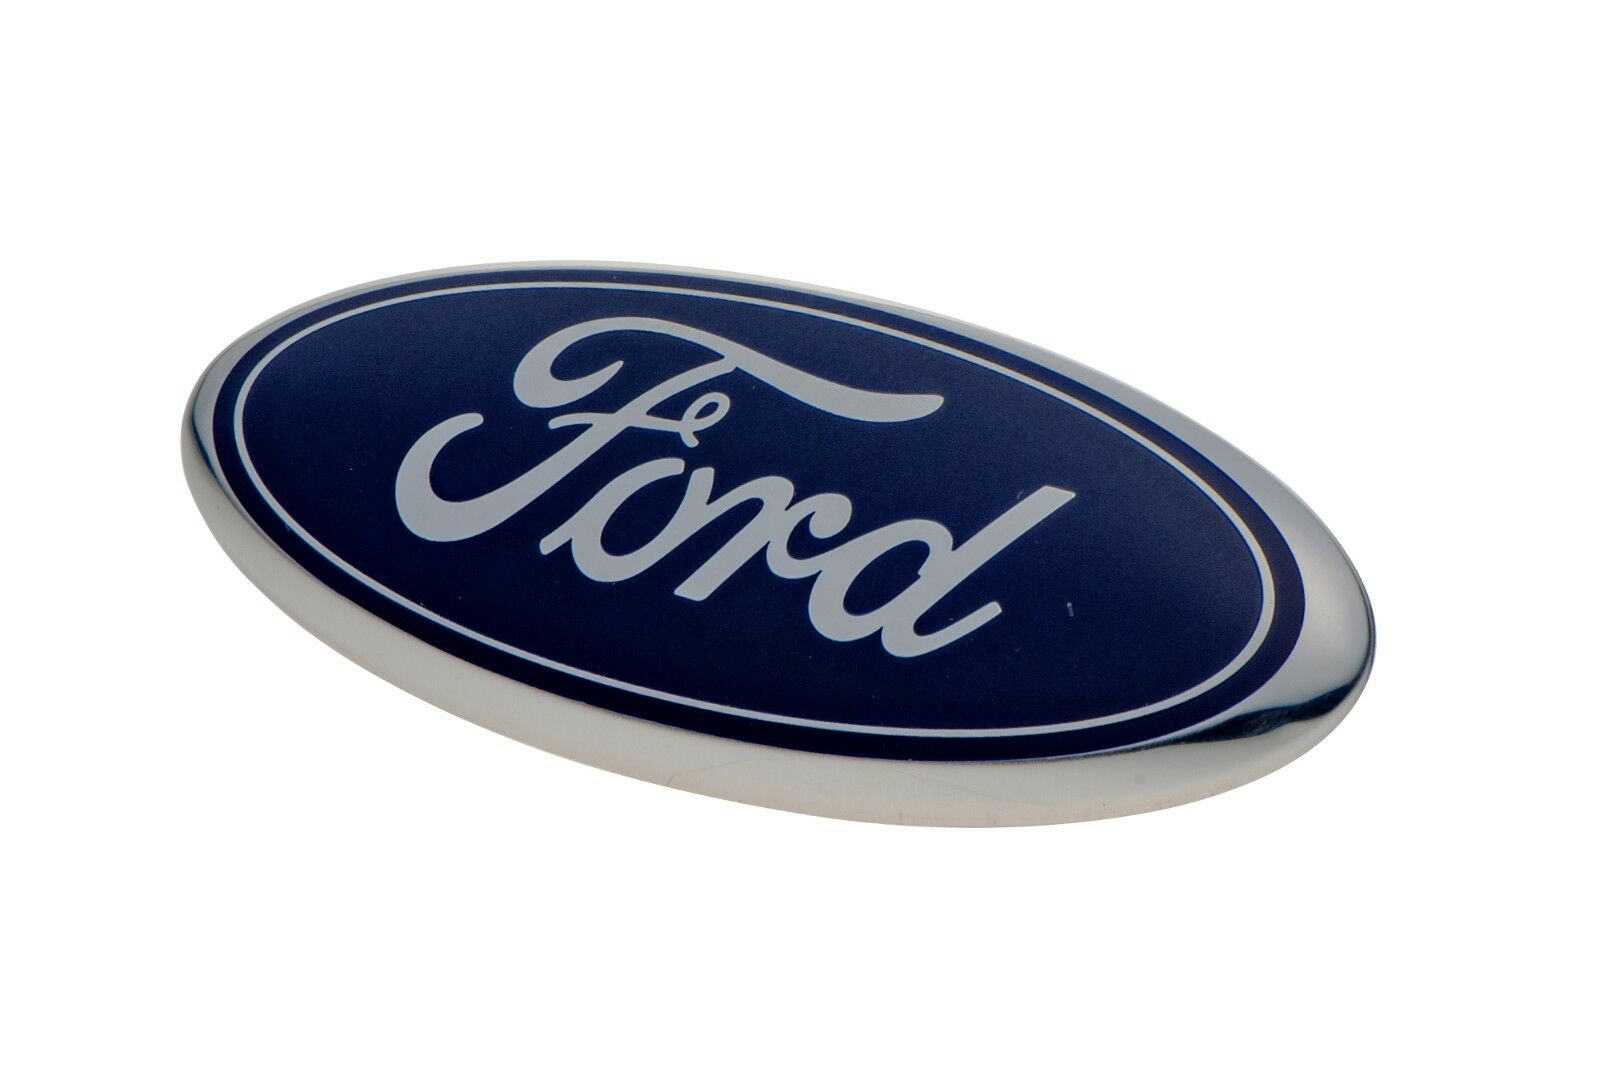 2006-2013 Ford Front Grille Blue FORD Oval Emblem Escape Taurus Fusion Focus OEM